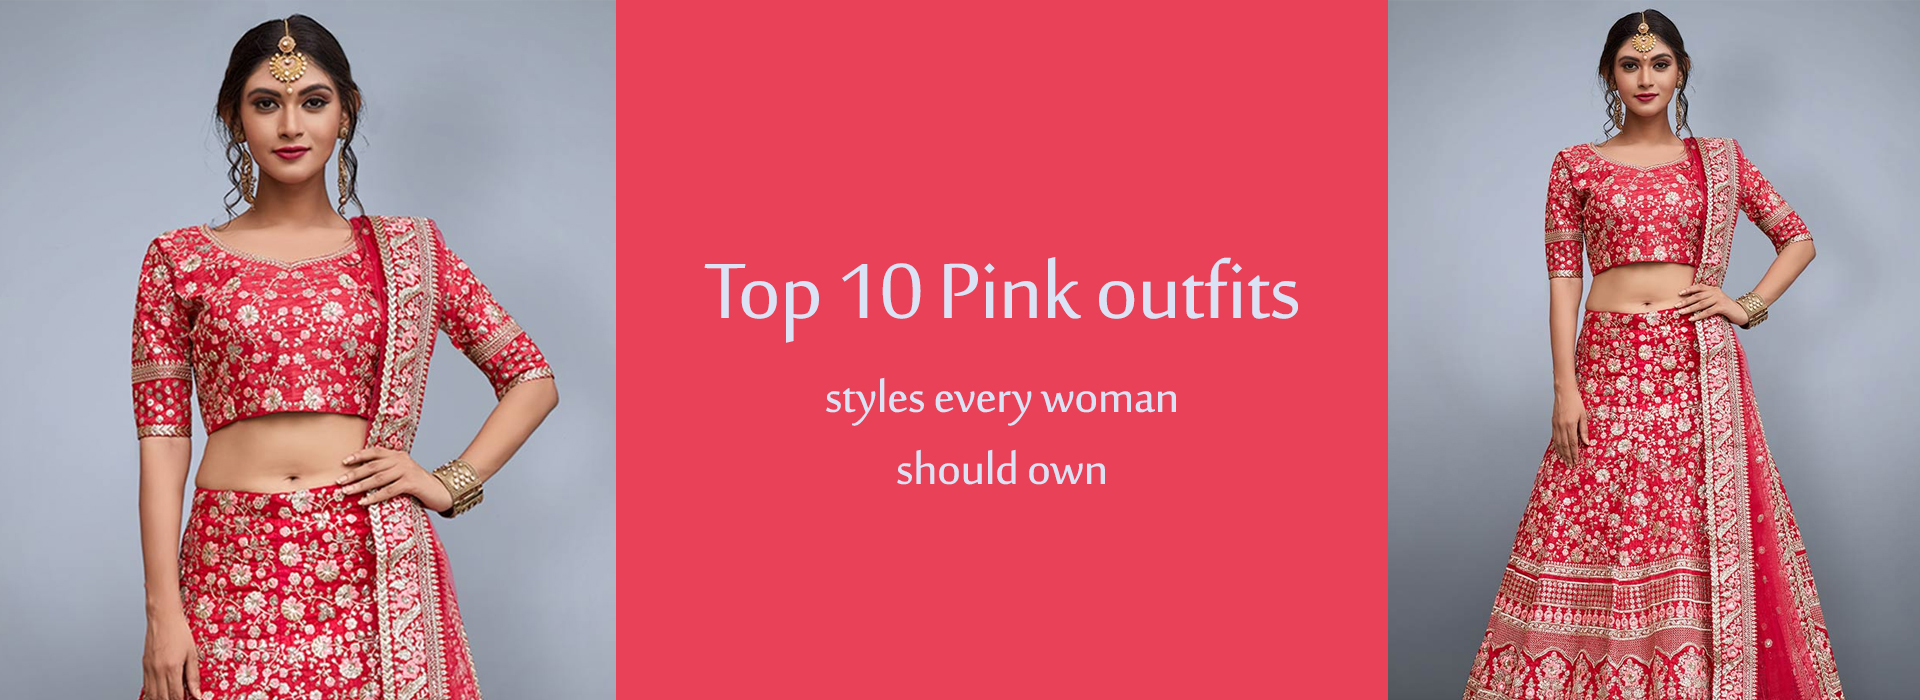 Top 10 Pink Outfits Styles Every Woman Should Own